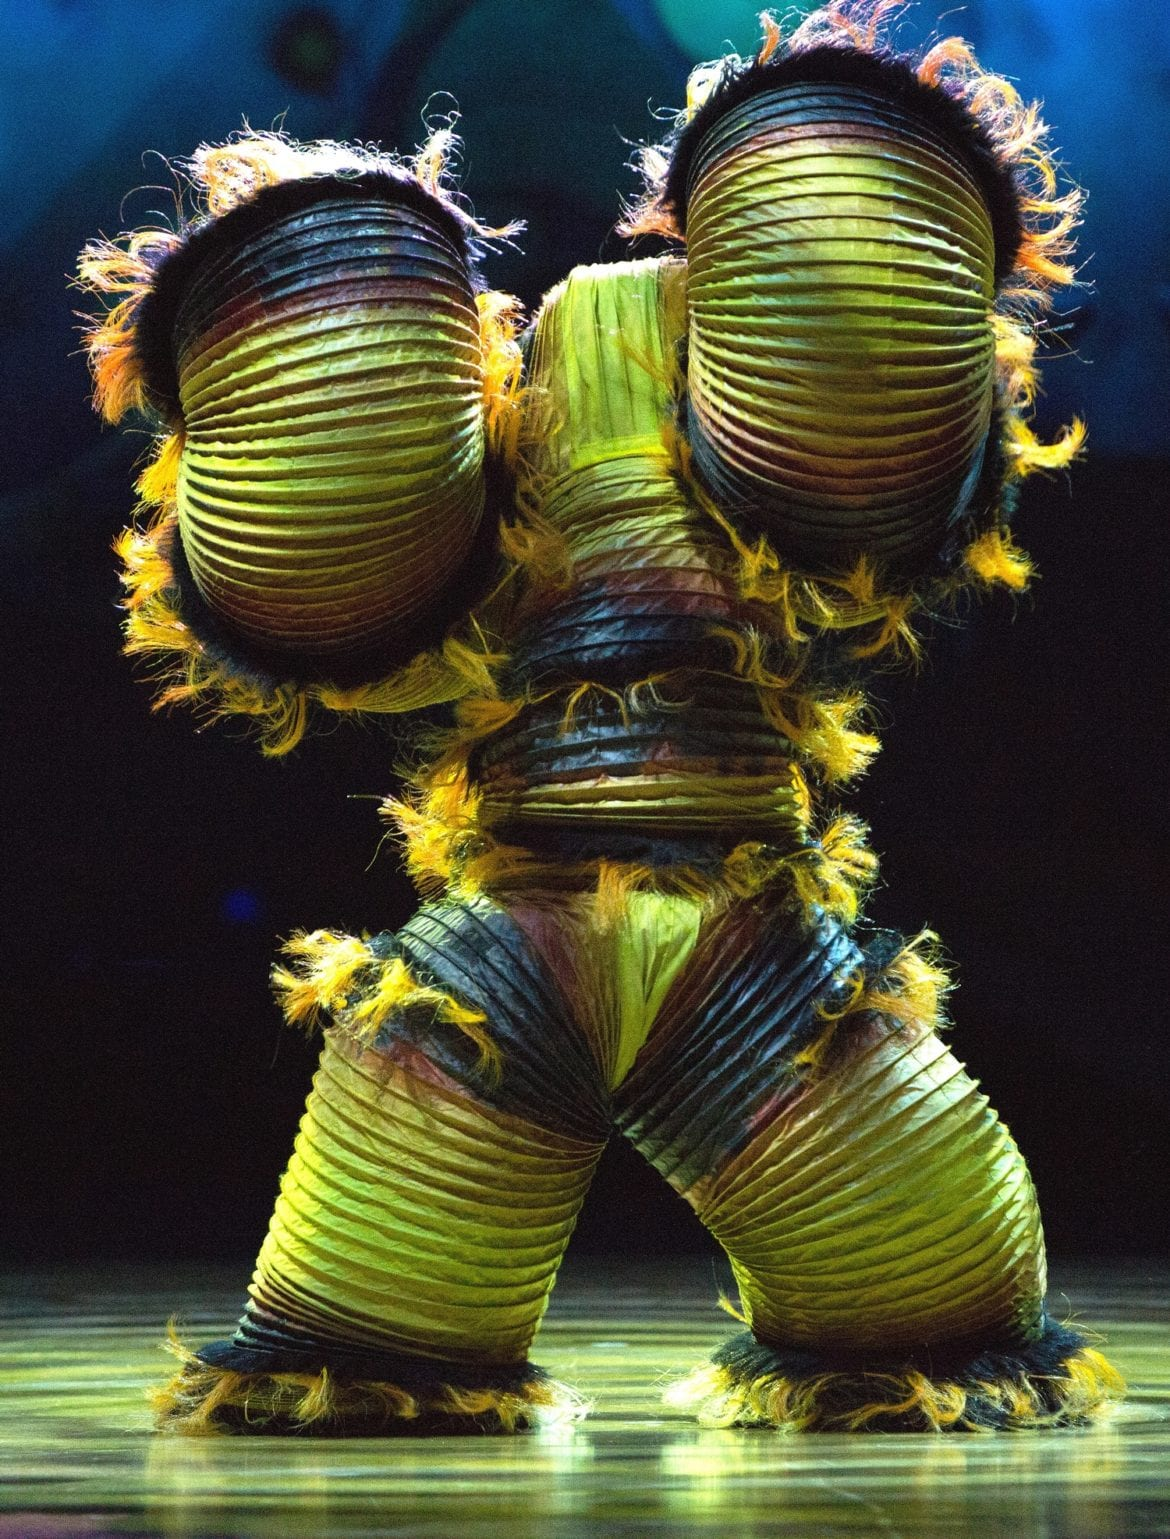 A Cirque du Soleil character on stage.